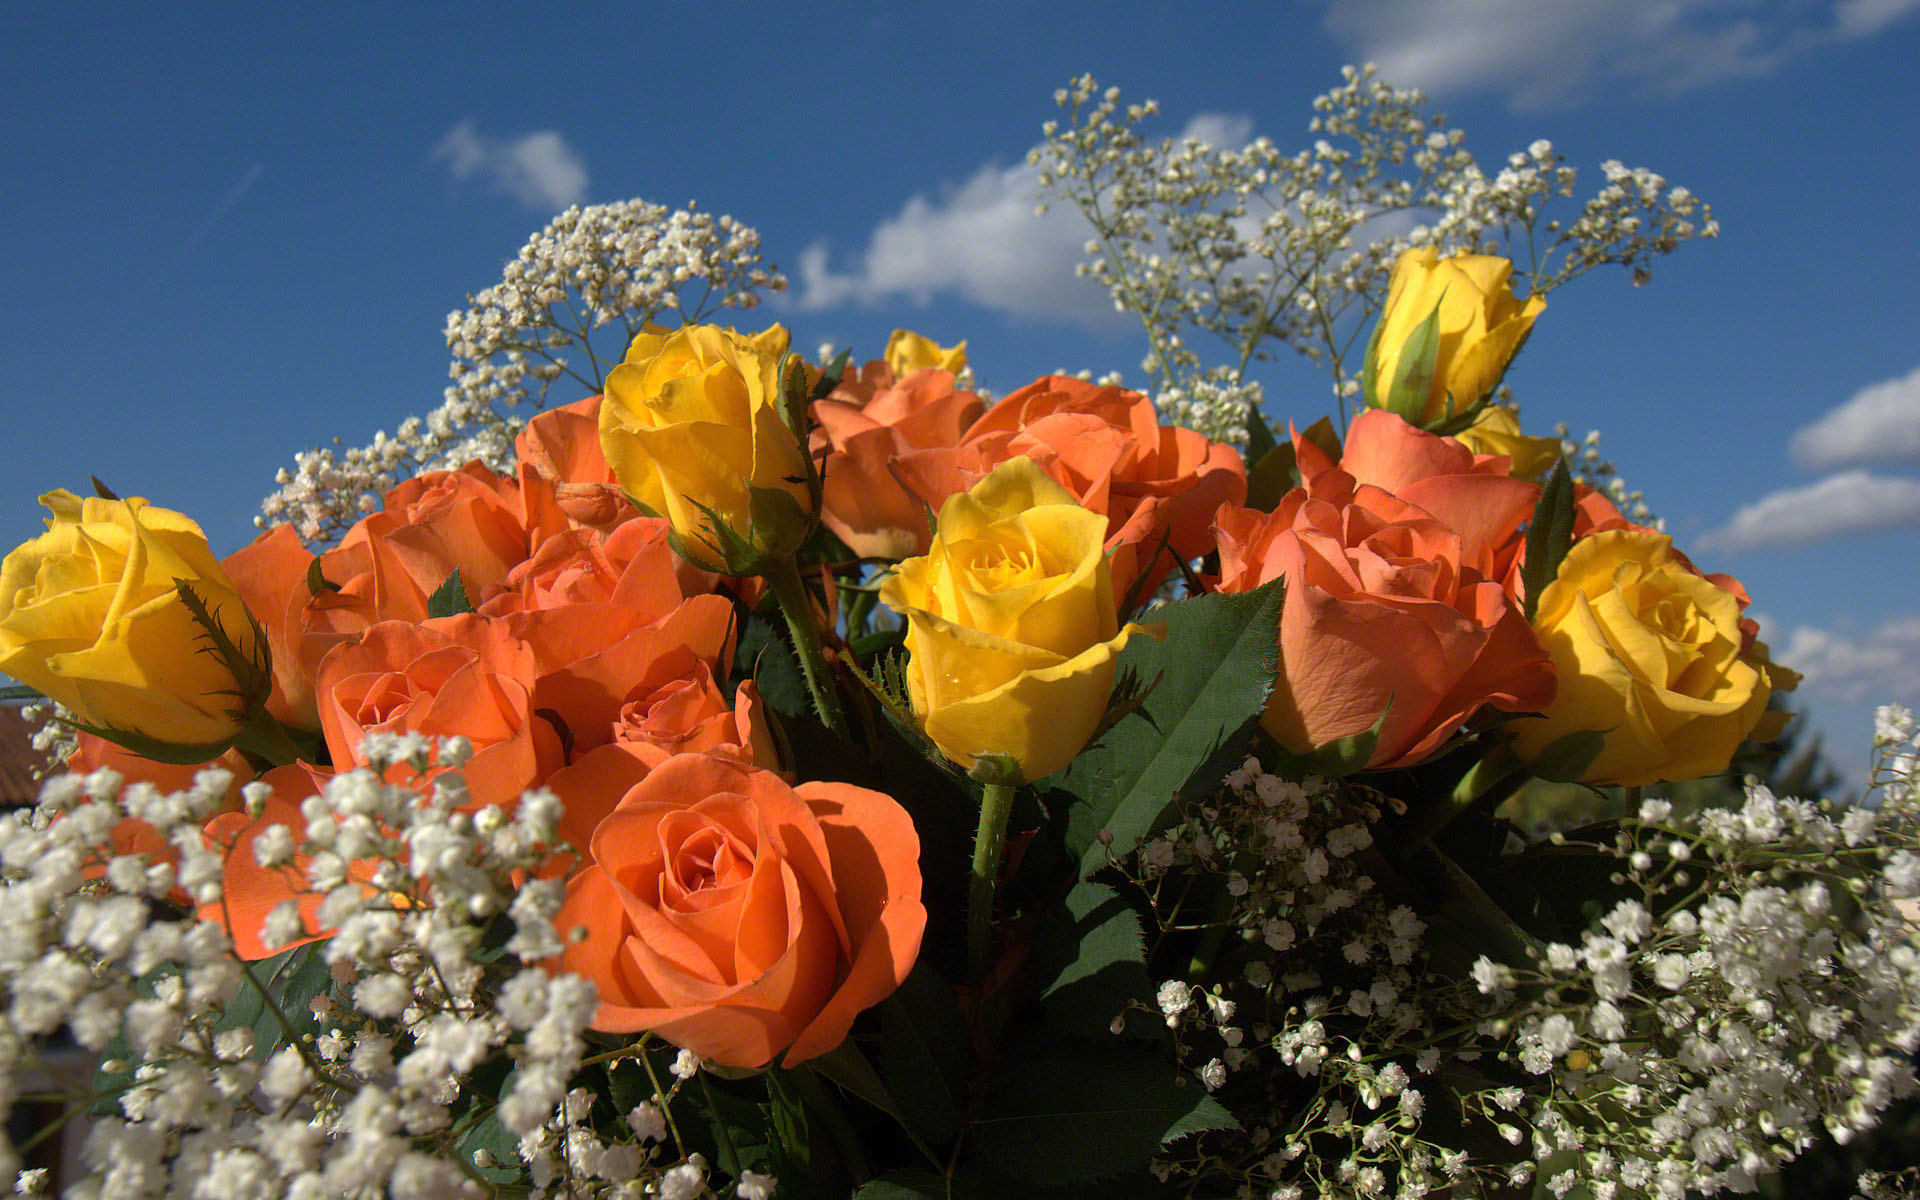 Yellow and orange roses bouquet